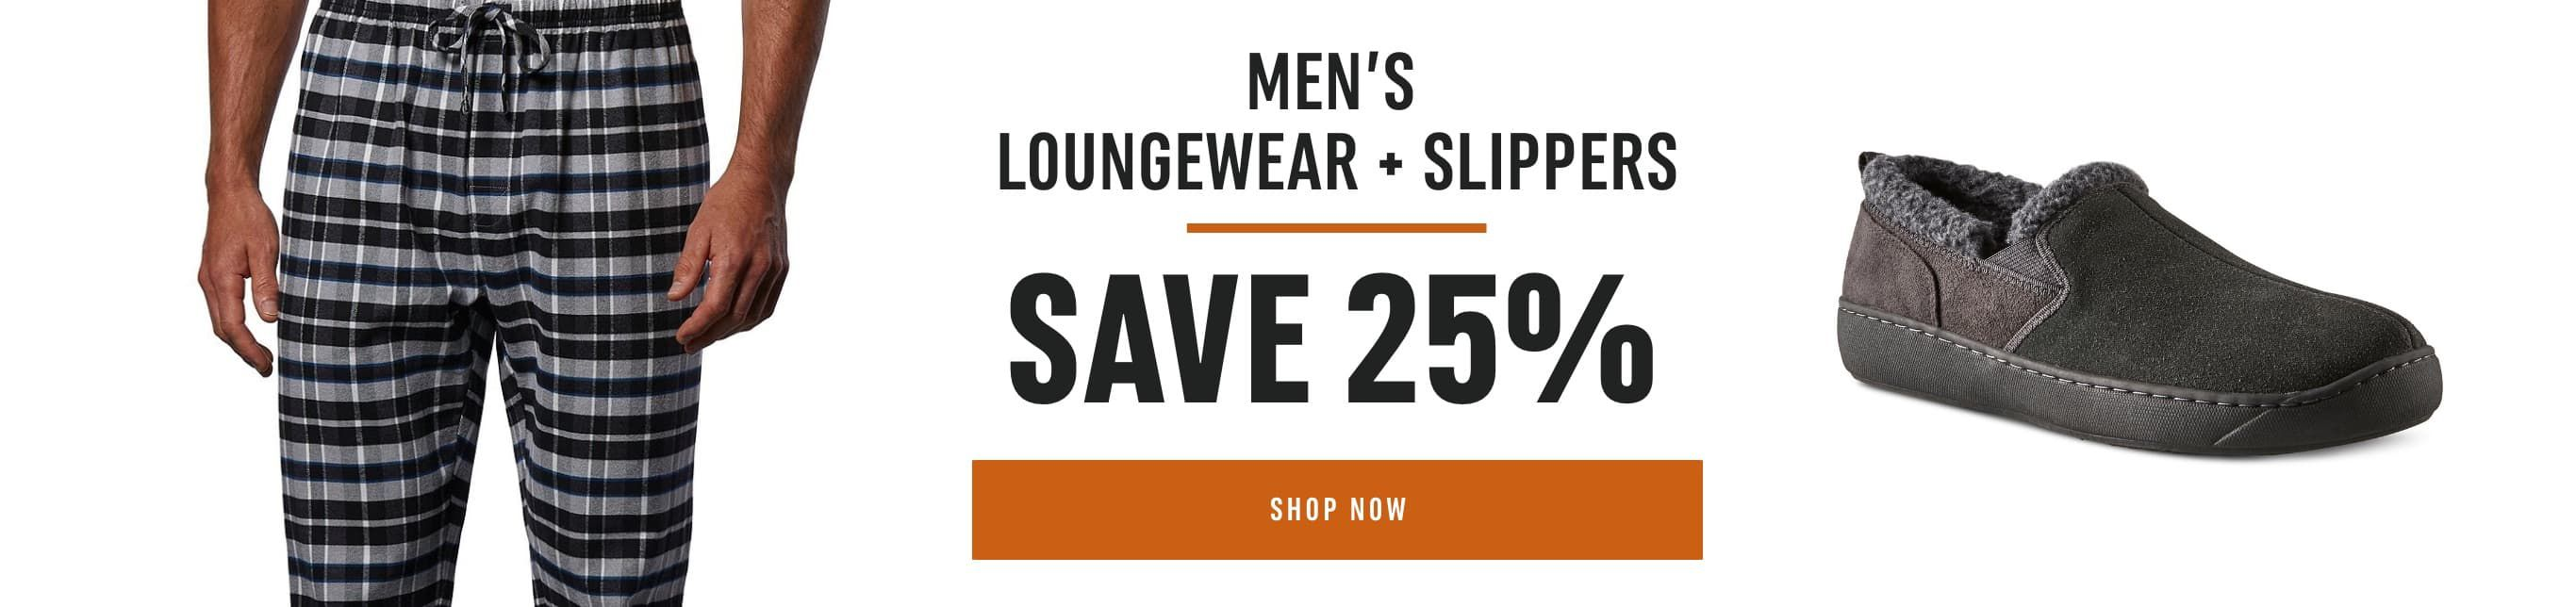 Men's Loungewear and Slippers: Save 25%